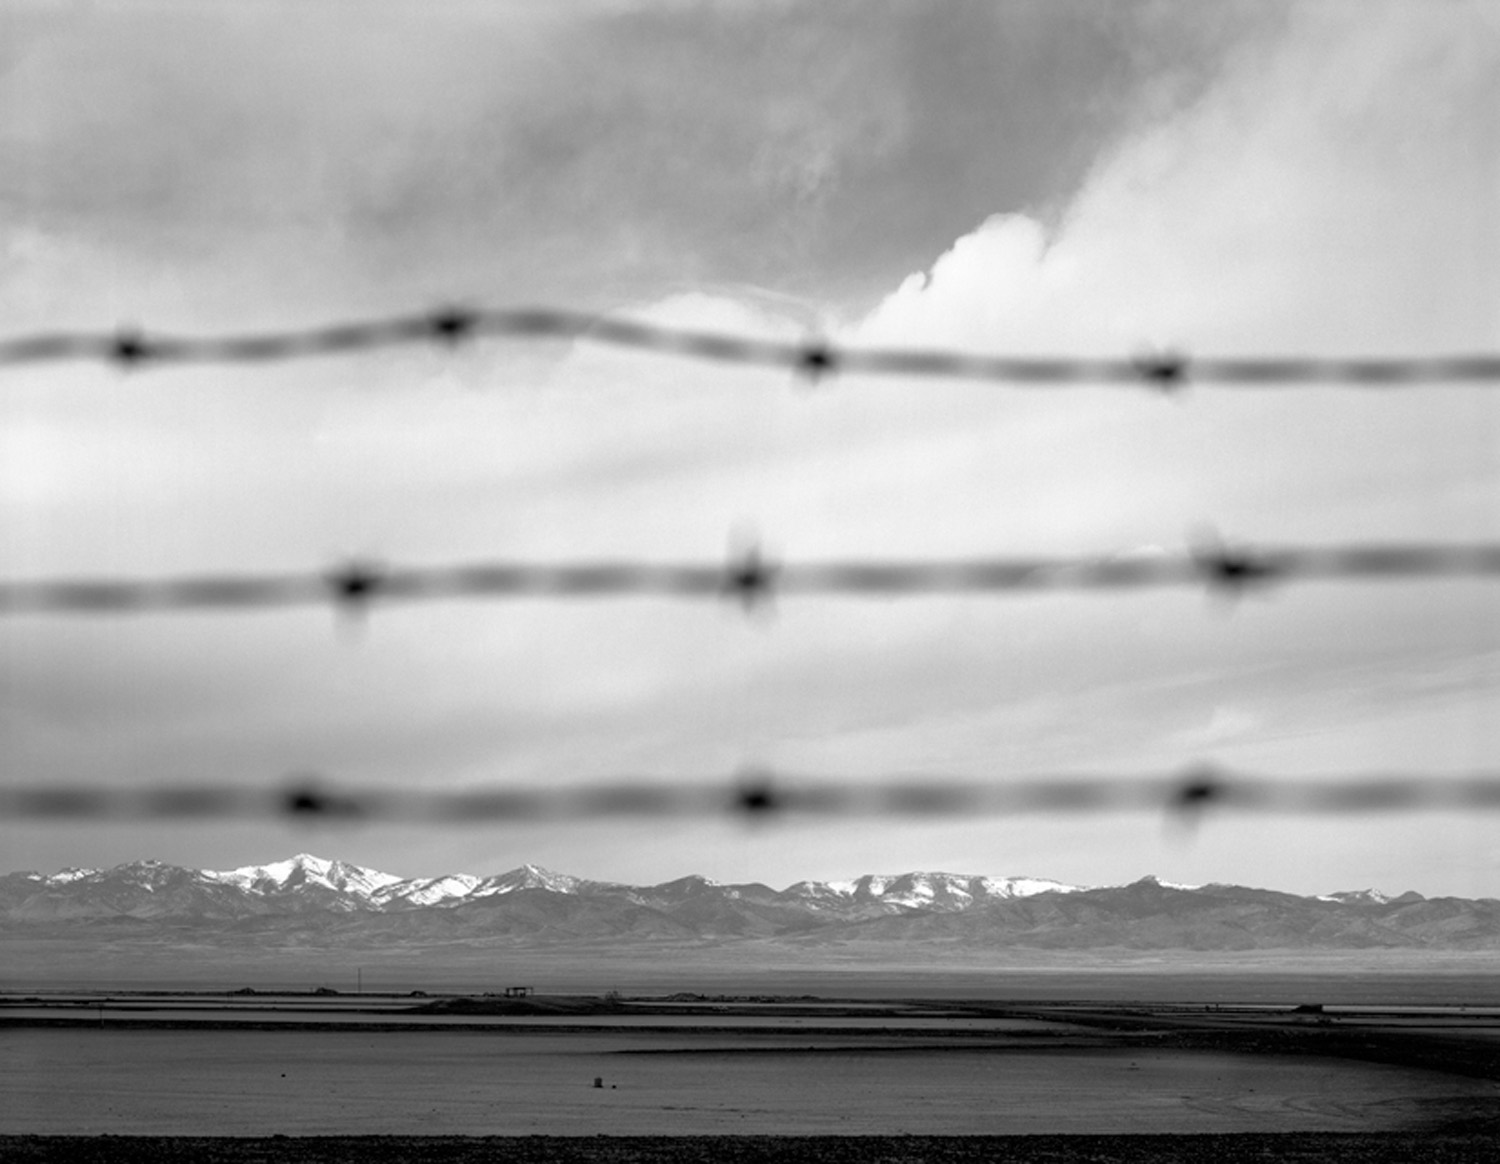 Goshute Mountains from the perimeter of South Base, Wendover